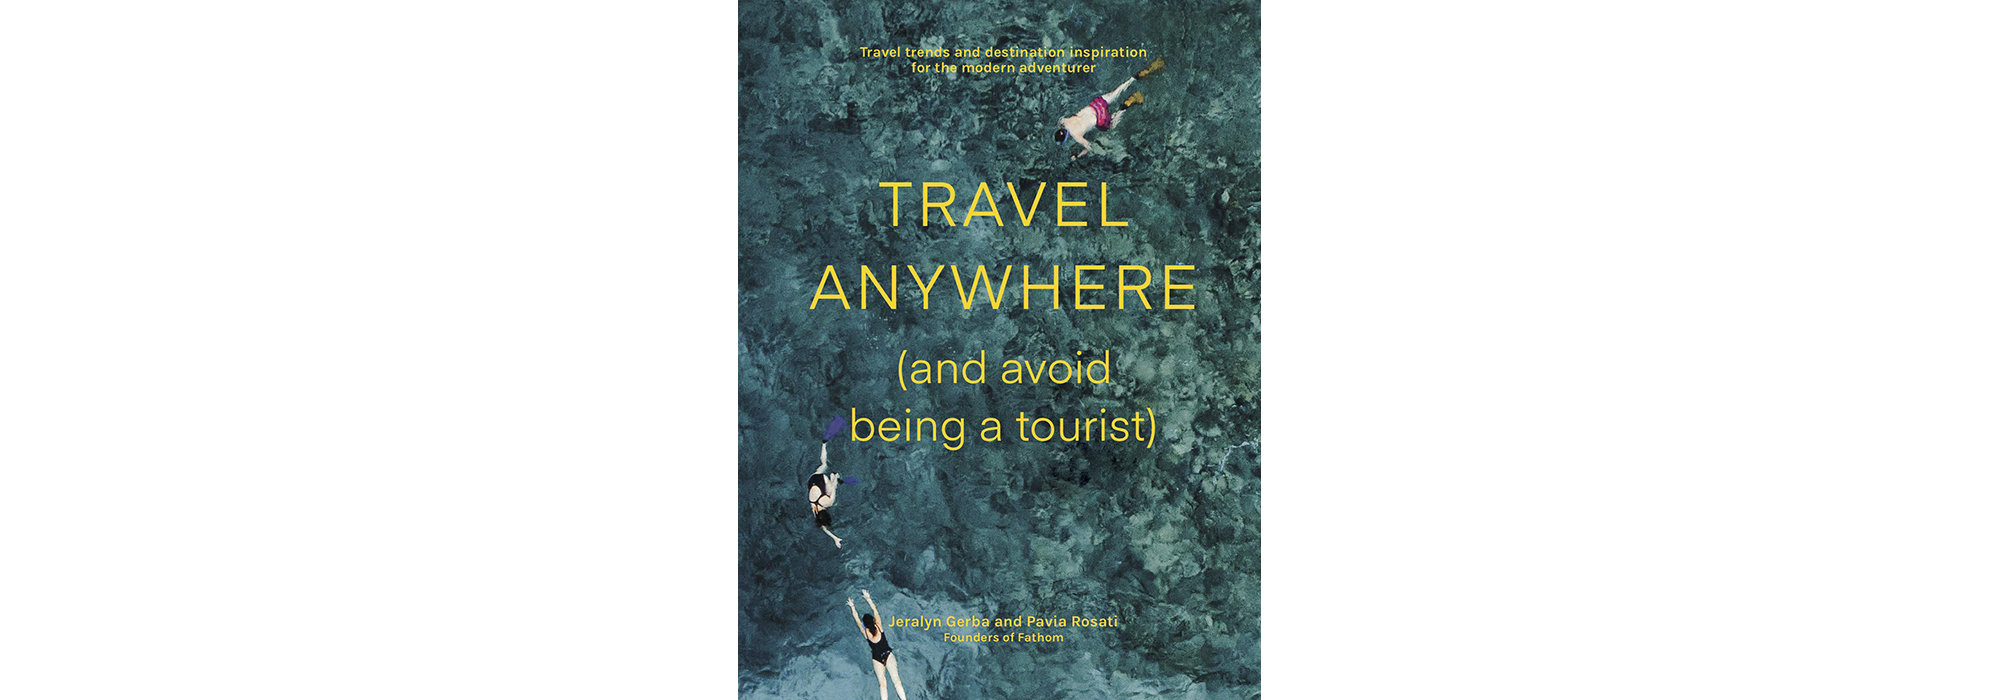 Travel Anywhere (And Avoid Being a Tourist), by Jeralyn Gerba and Pavia Rosati